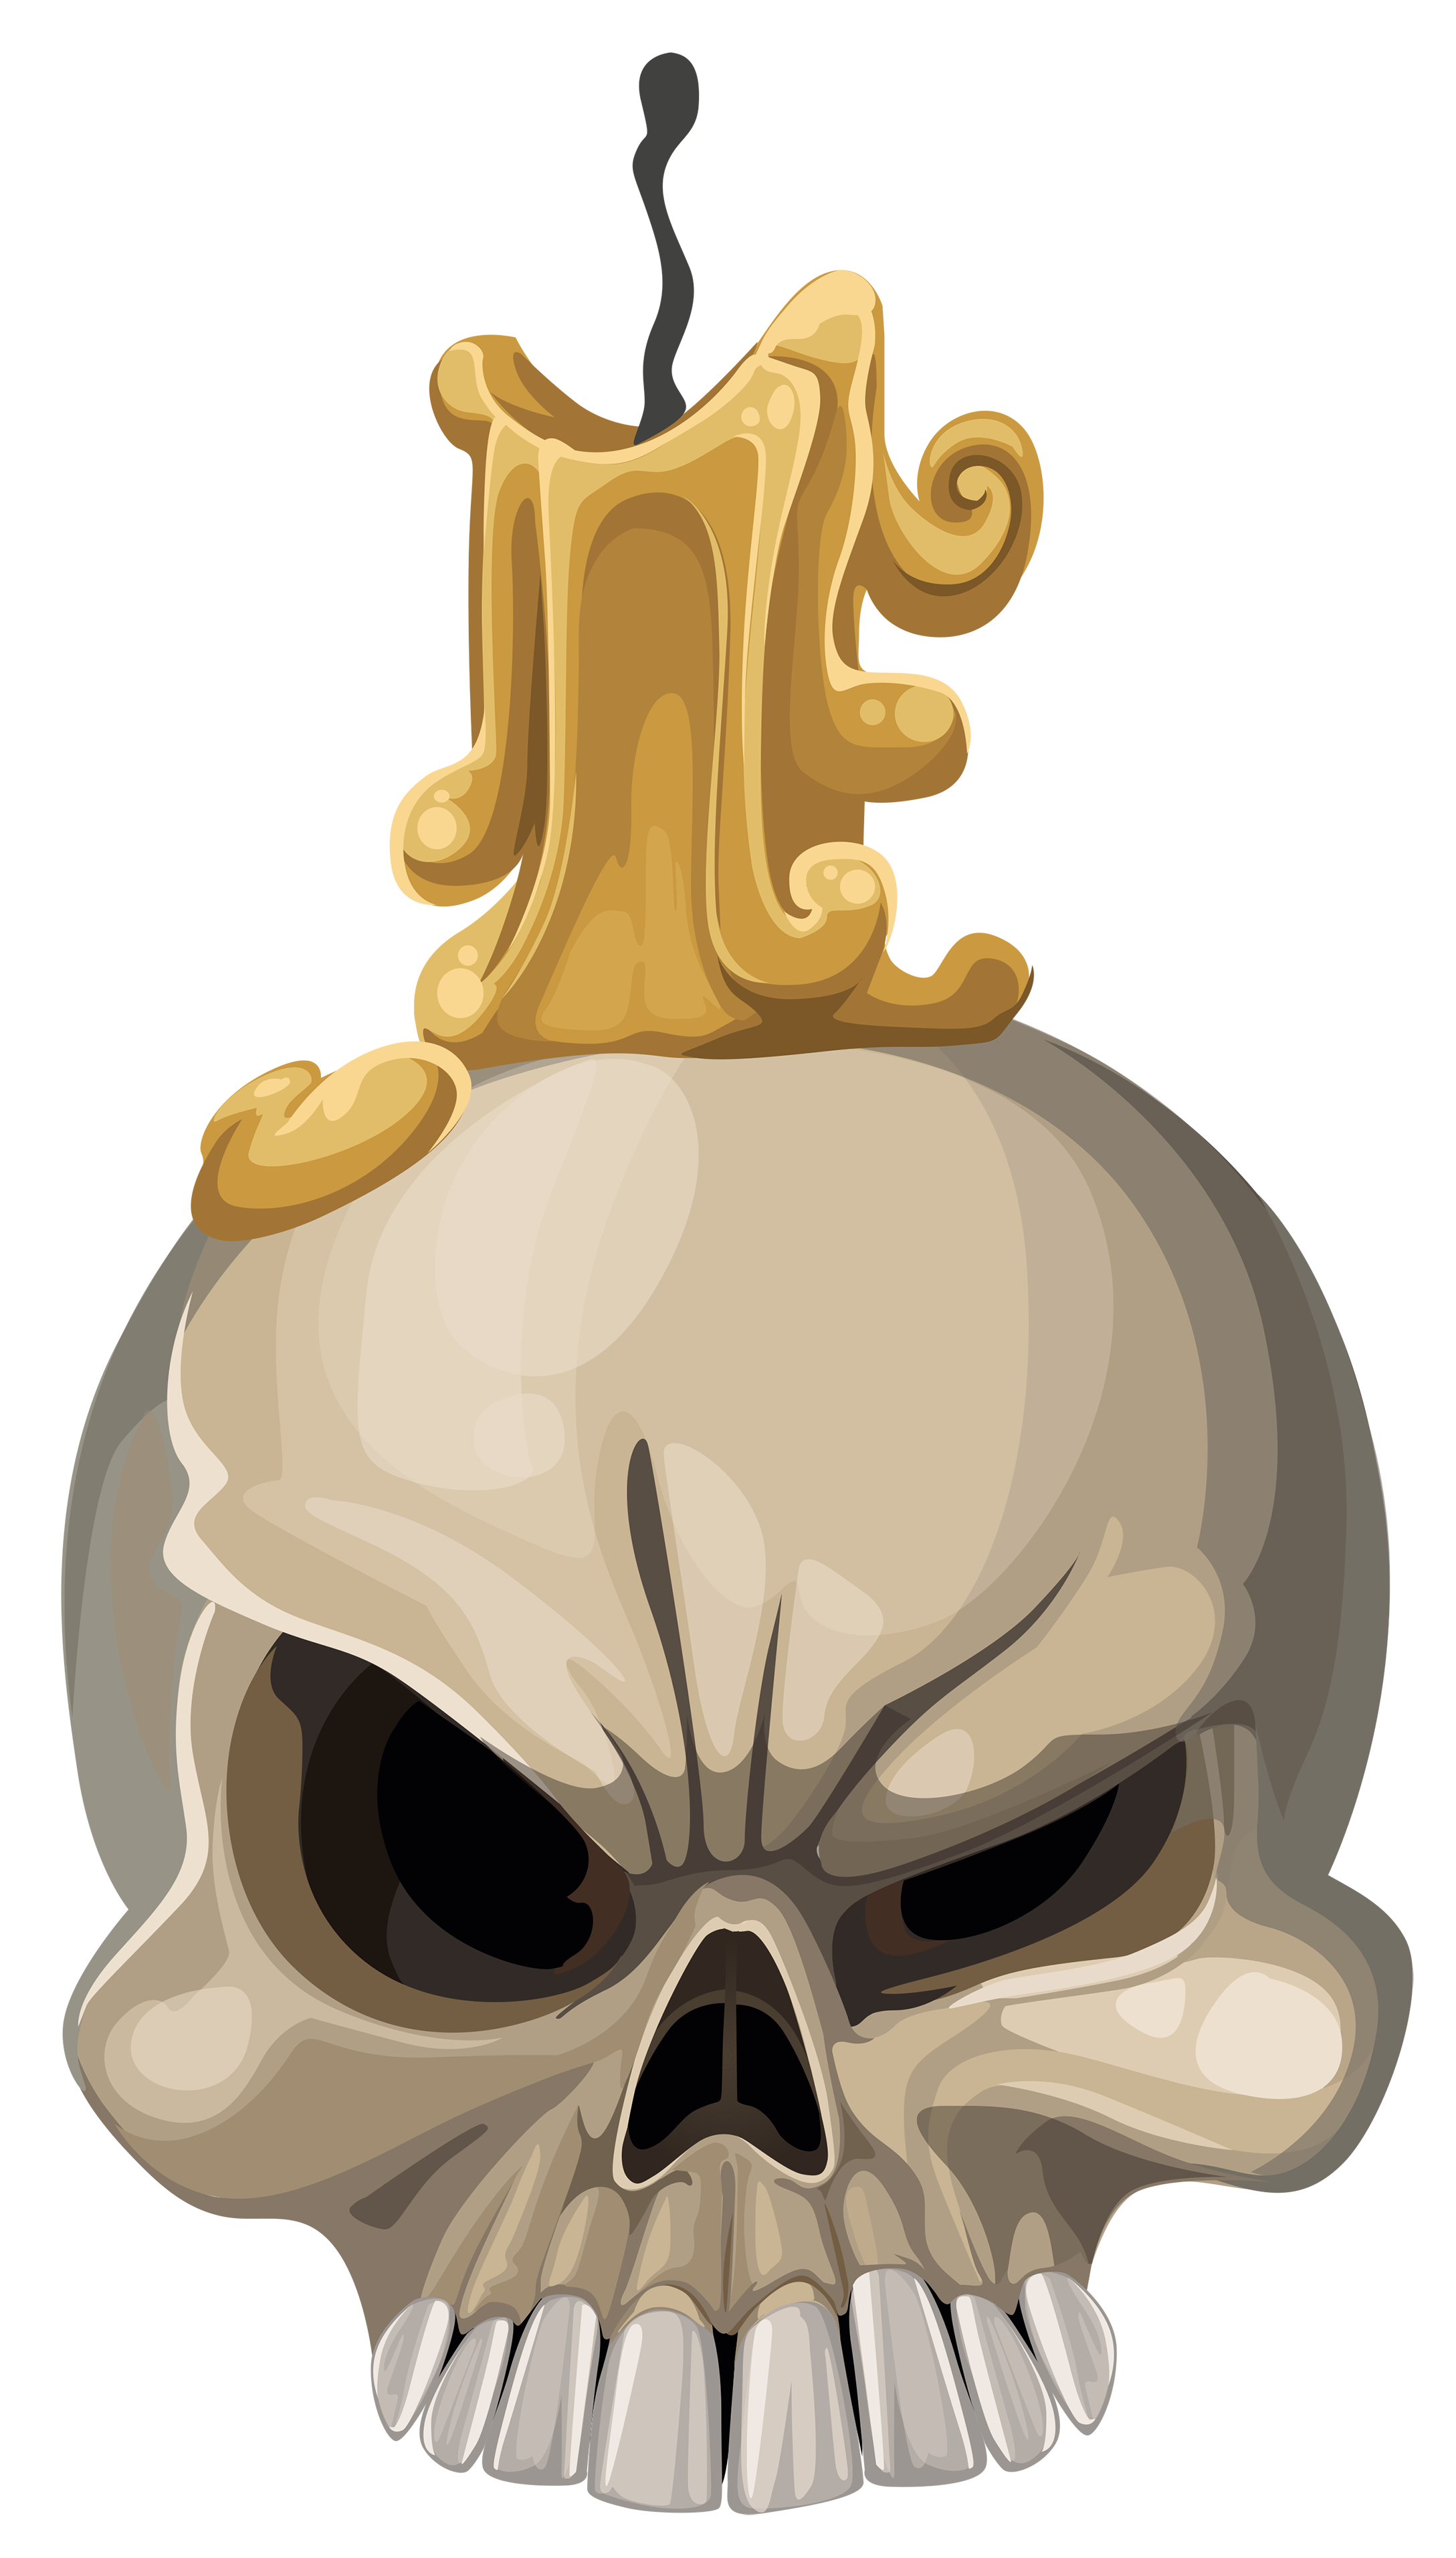 2177x3824 Halloween Skull With Candle Png Clipart Imageu200b Gallery